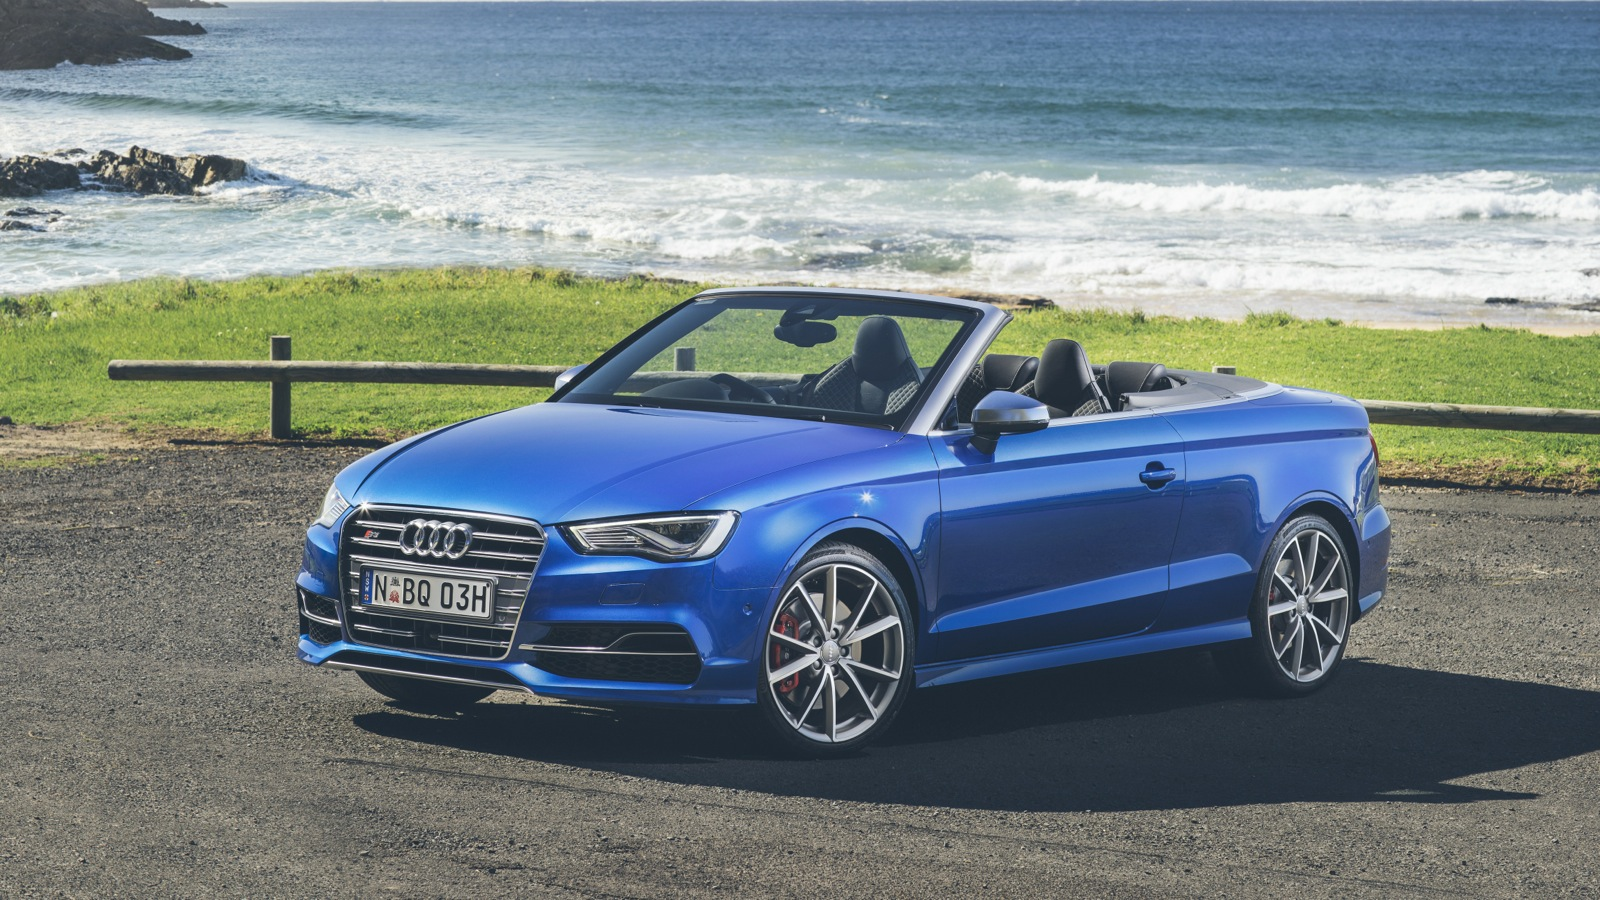 audi s3 cabriolet pricing and specifications photos 1 of 6. Black Bedroom Furniture Sets. Home Design Ideas